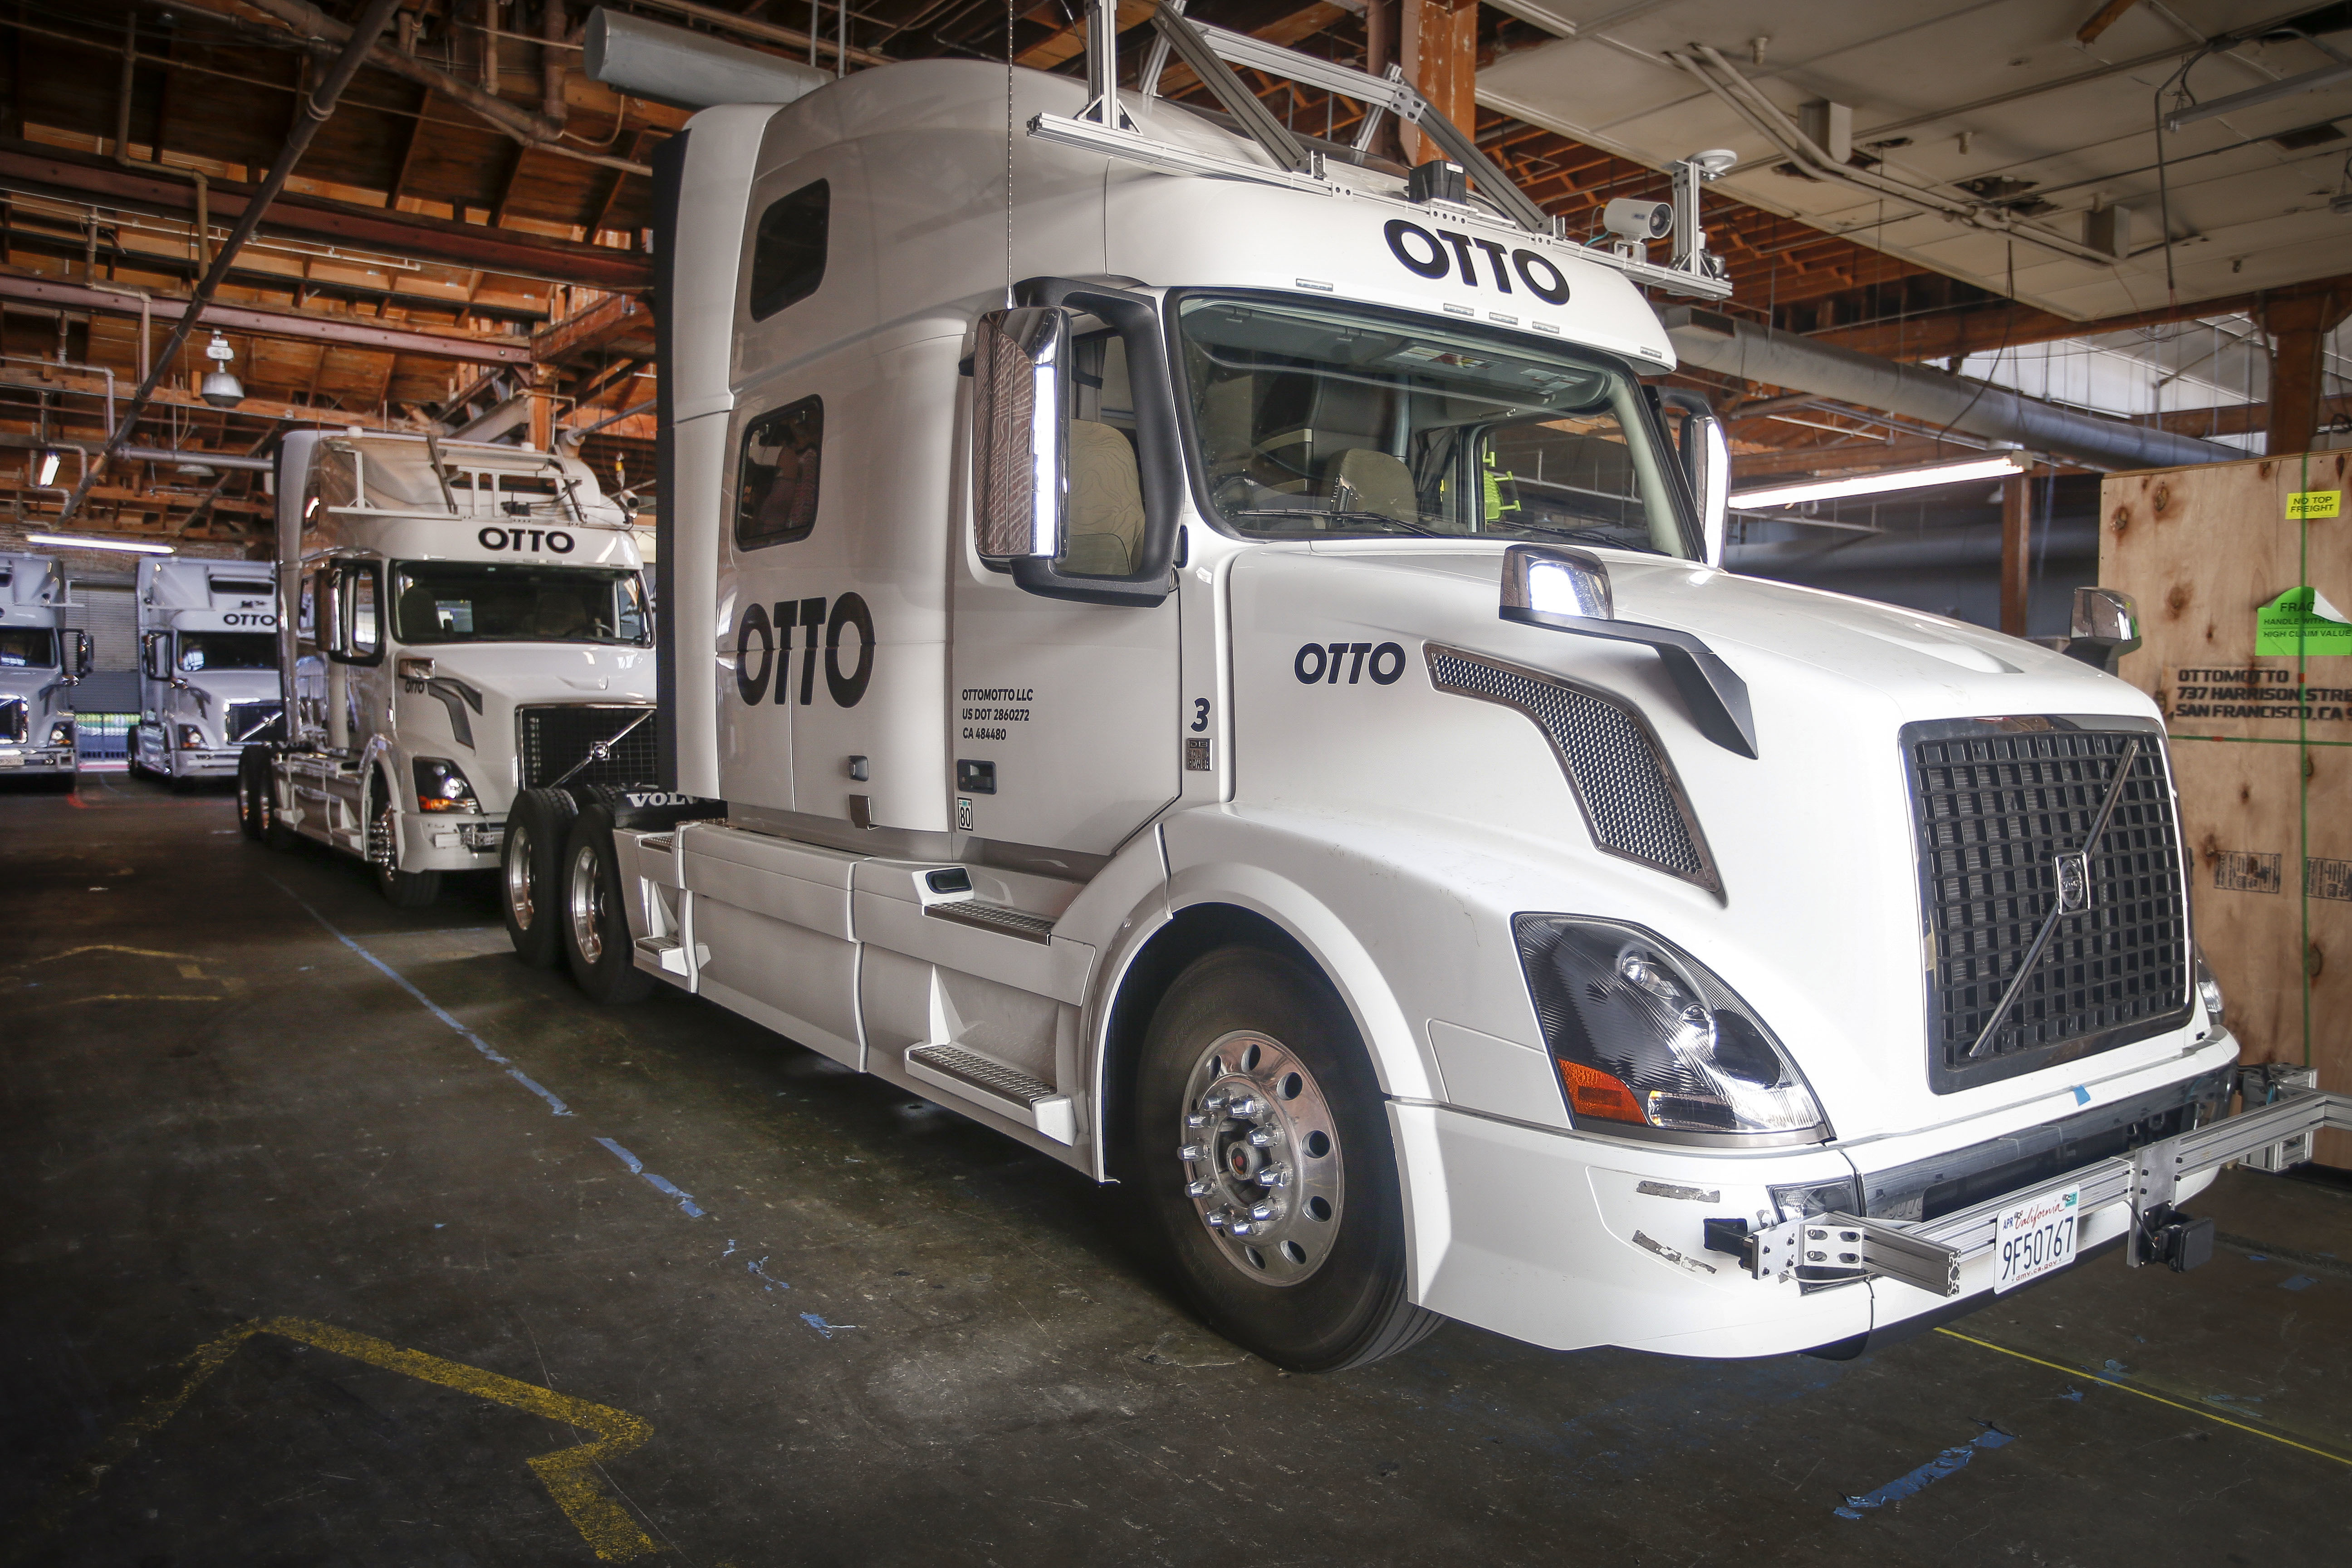 Uber acquired self-driving startup Otto, which has developed technology allowing big rigs to drive themselves. (AP Photo/Tony Avelar)